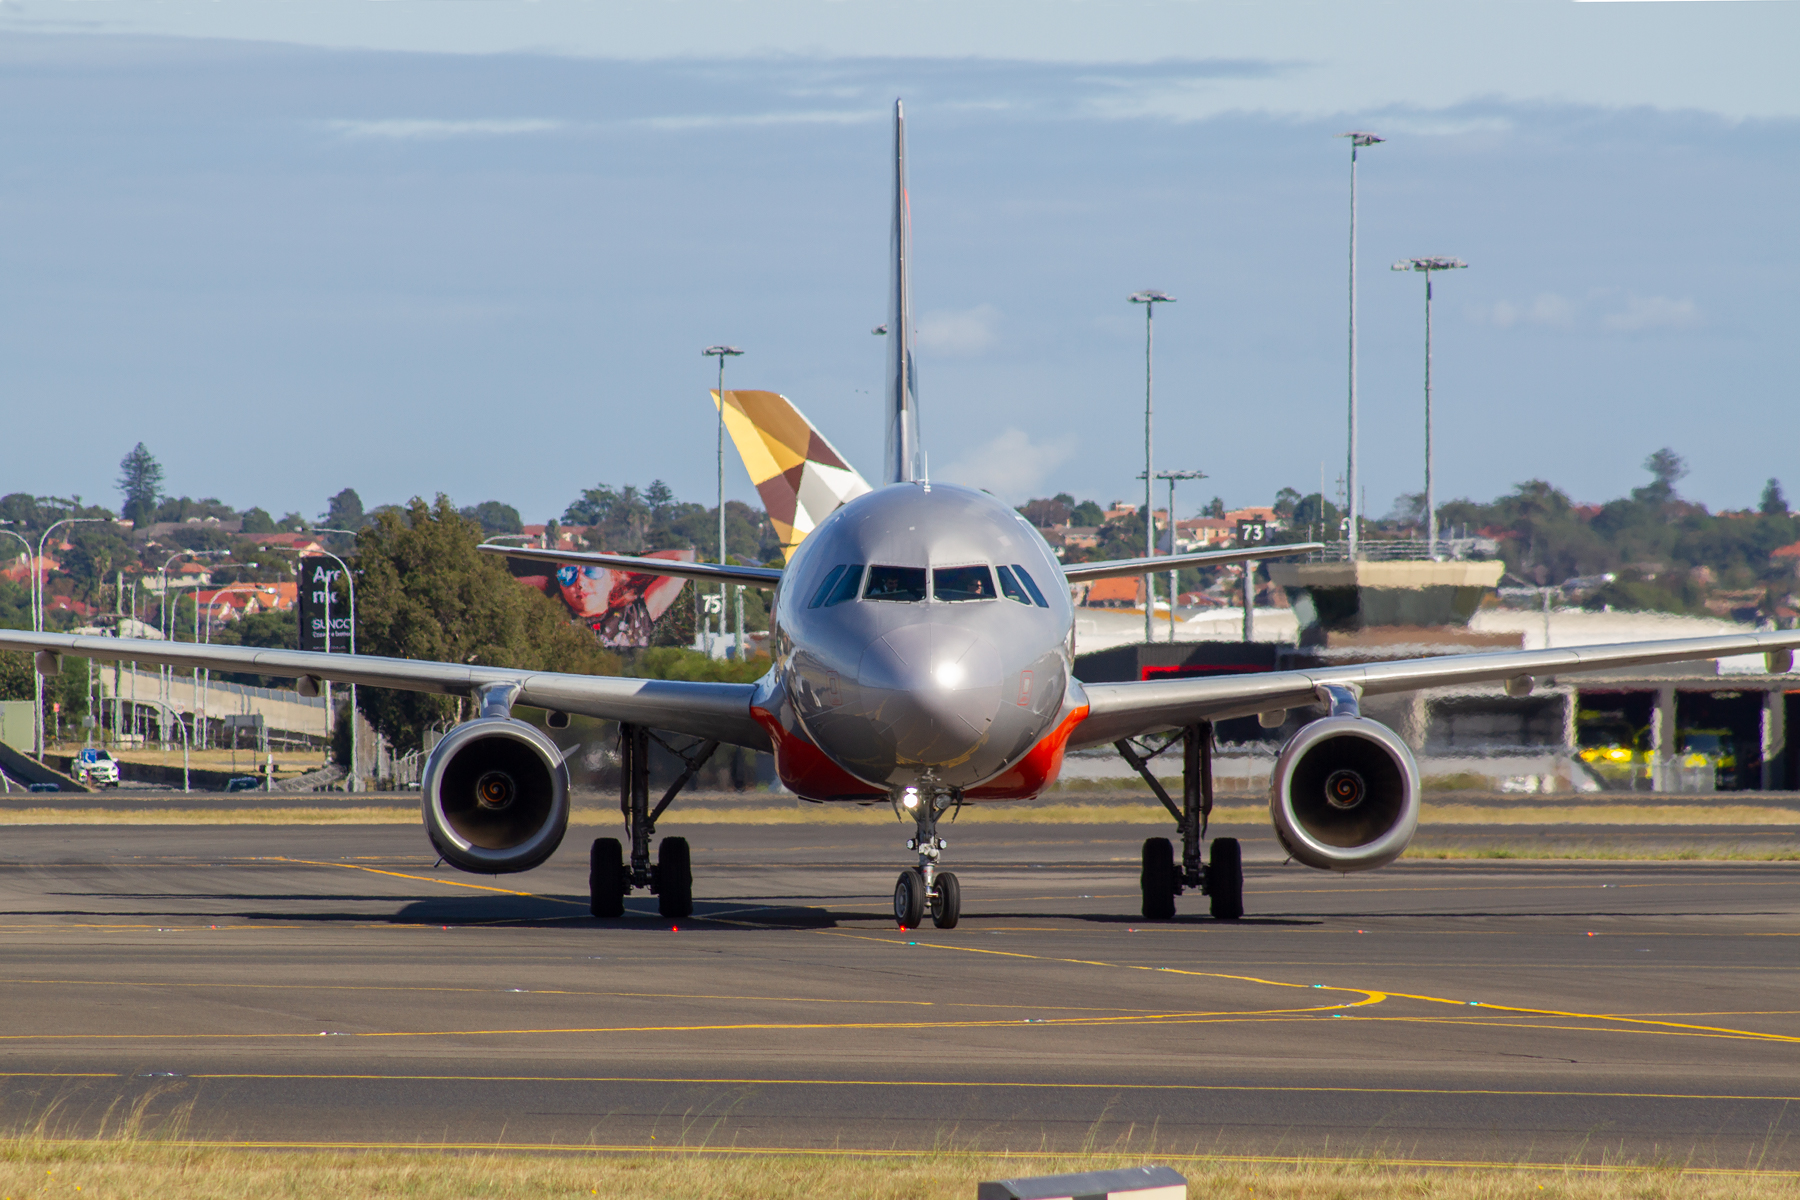 Jetstar Airways Airbus A320-200 VH-VGH at Kingsford Smith